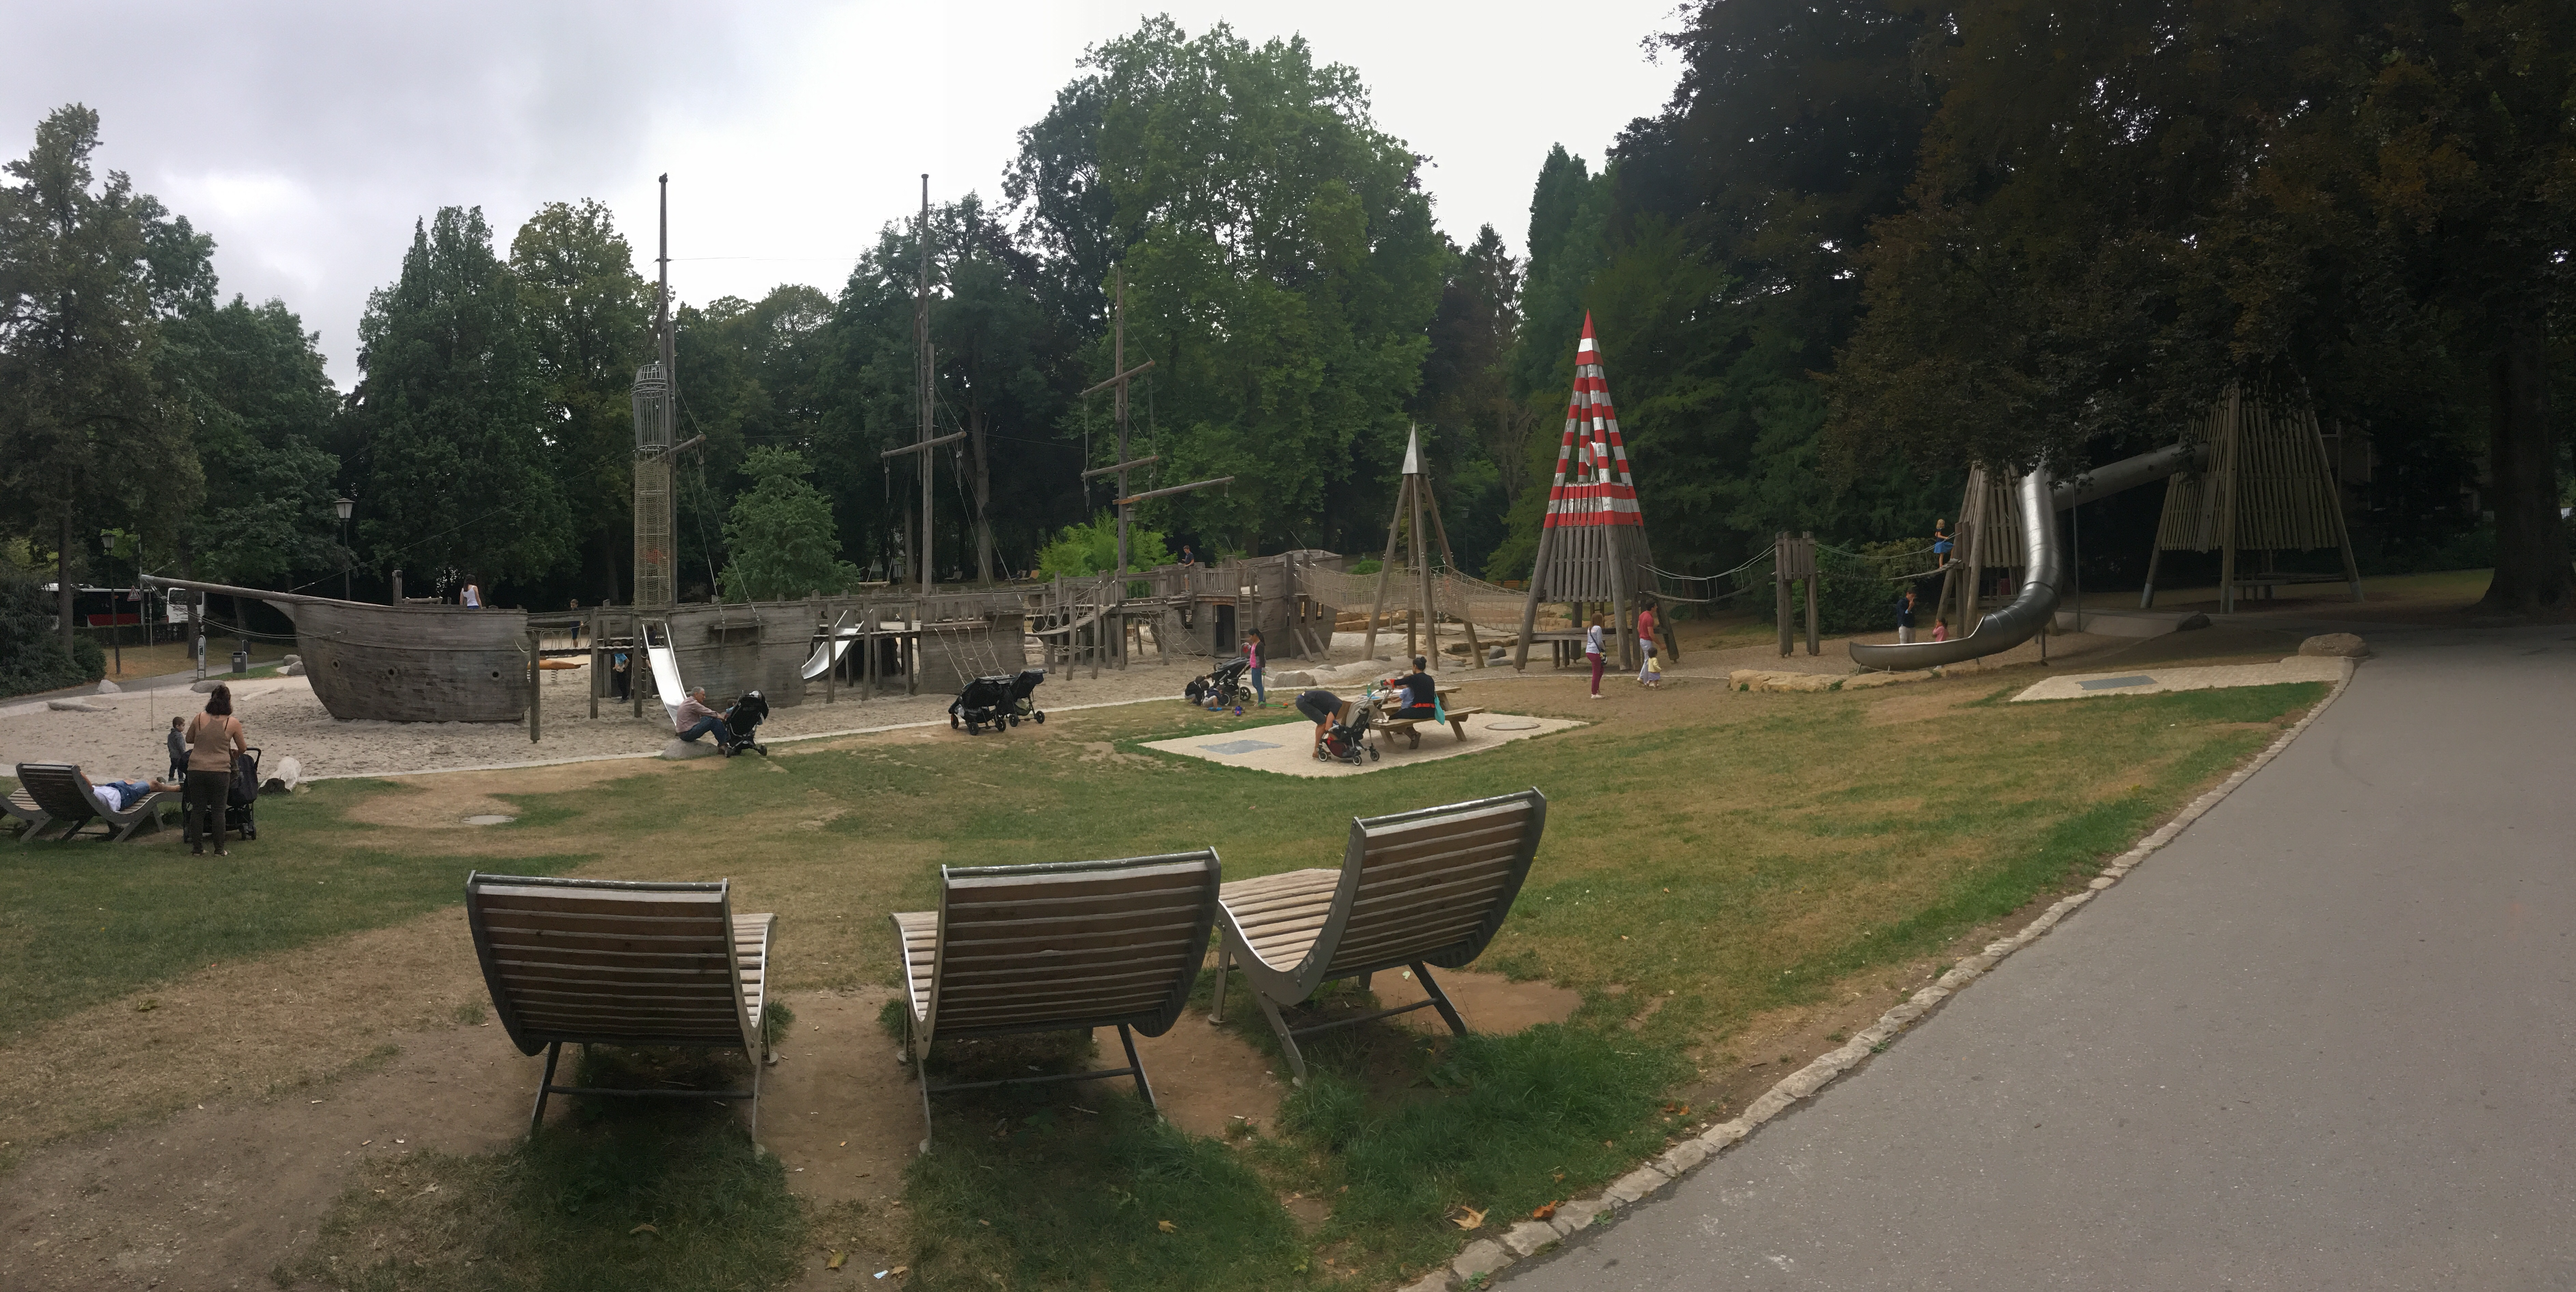 Pirate park in Luxembourg Municipal Park for children